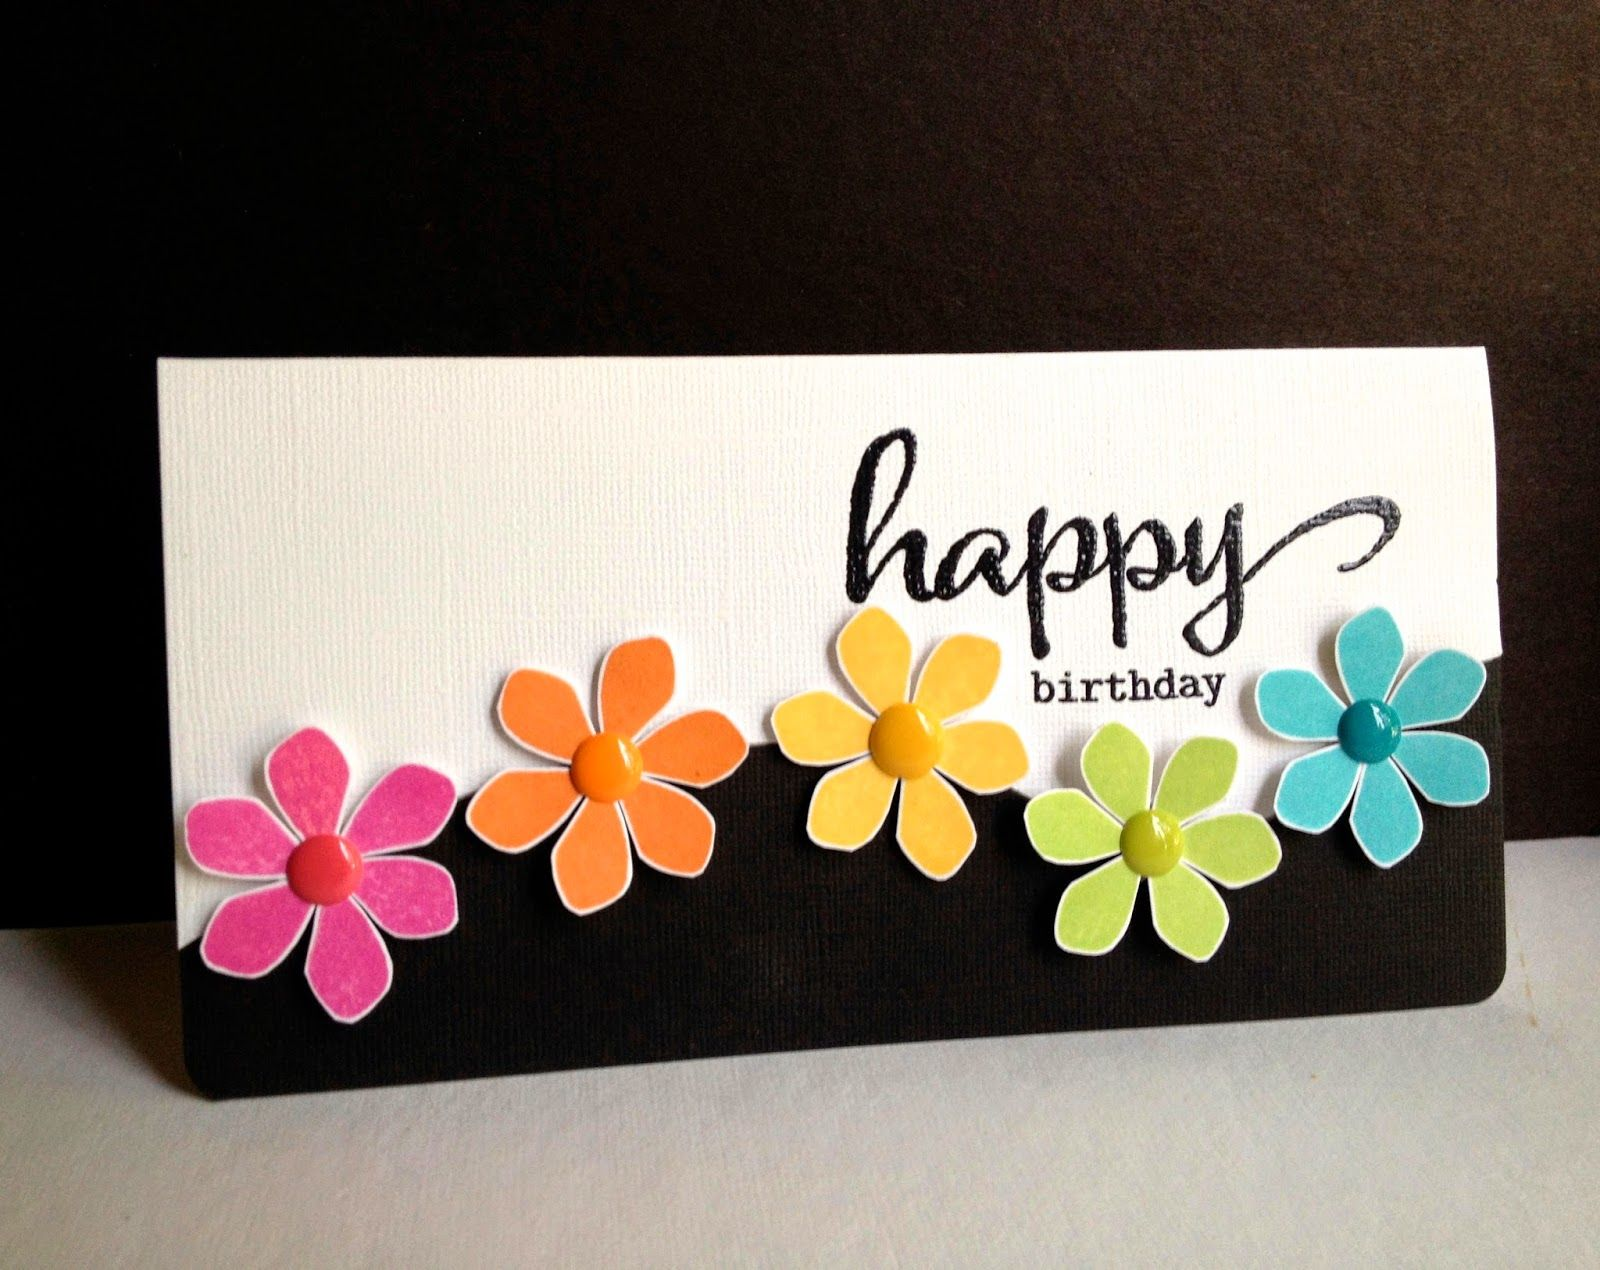 Happy flowers happy birthday happy birthday birthdays and flower card ideas happy flowers happy birthday kristyandbryce Image collections